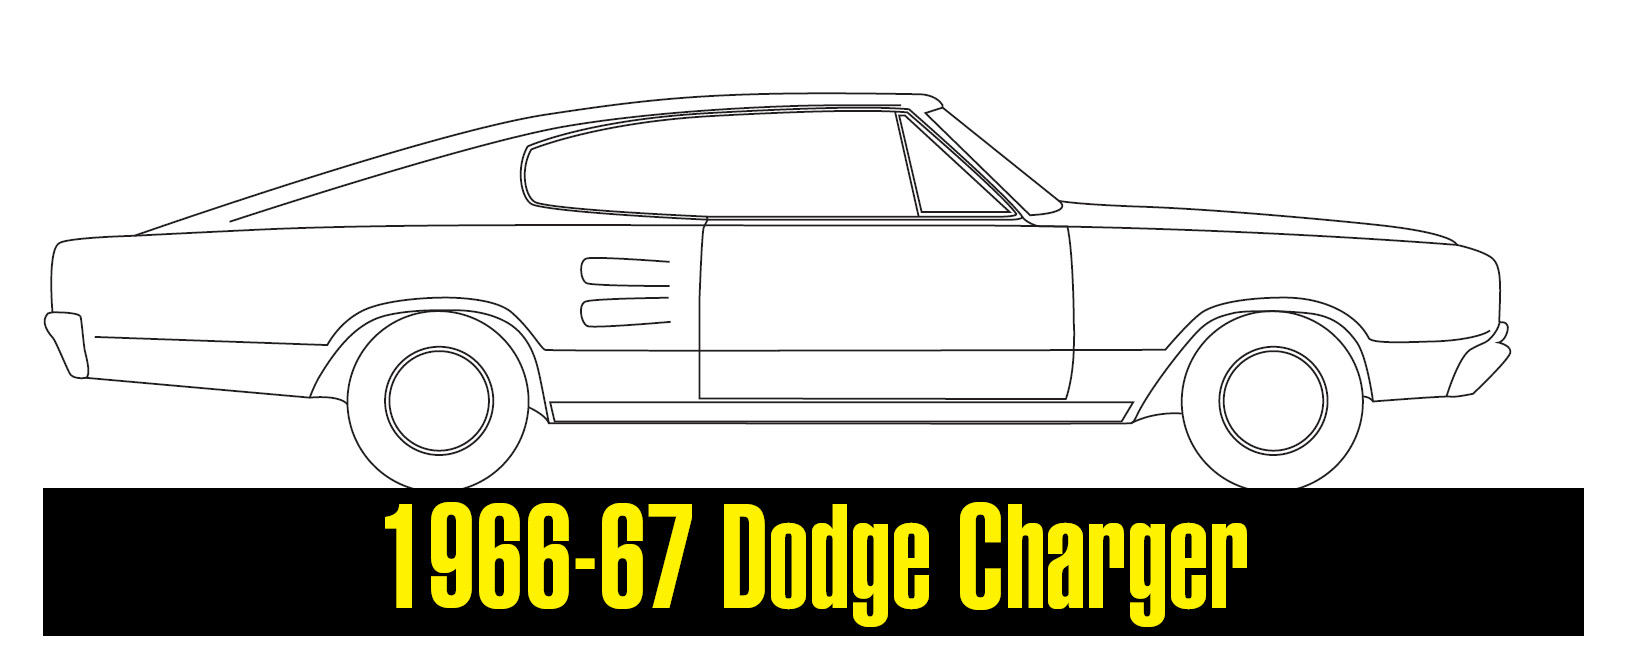 Classic_Dodge_66_Charger